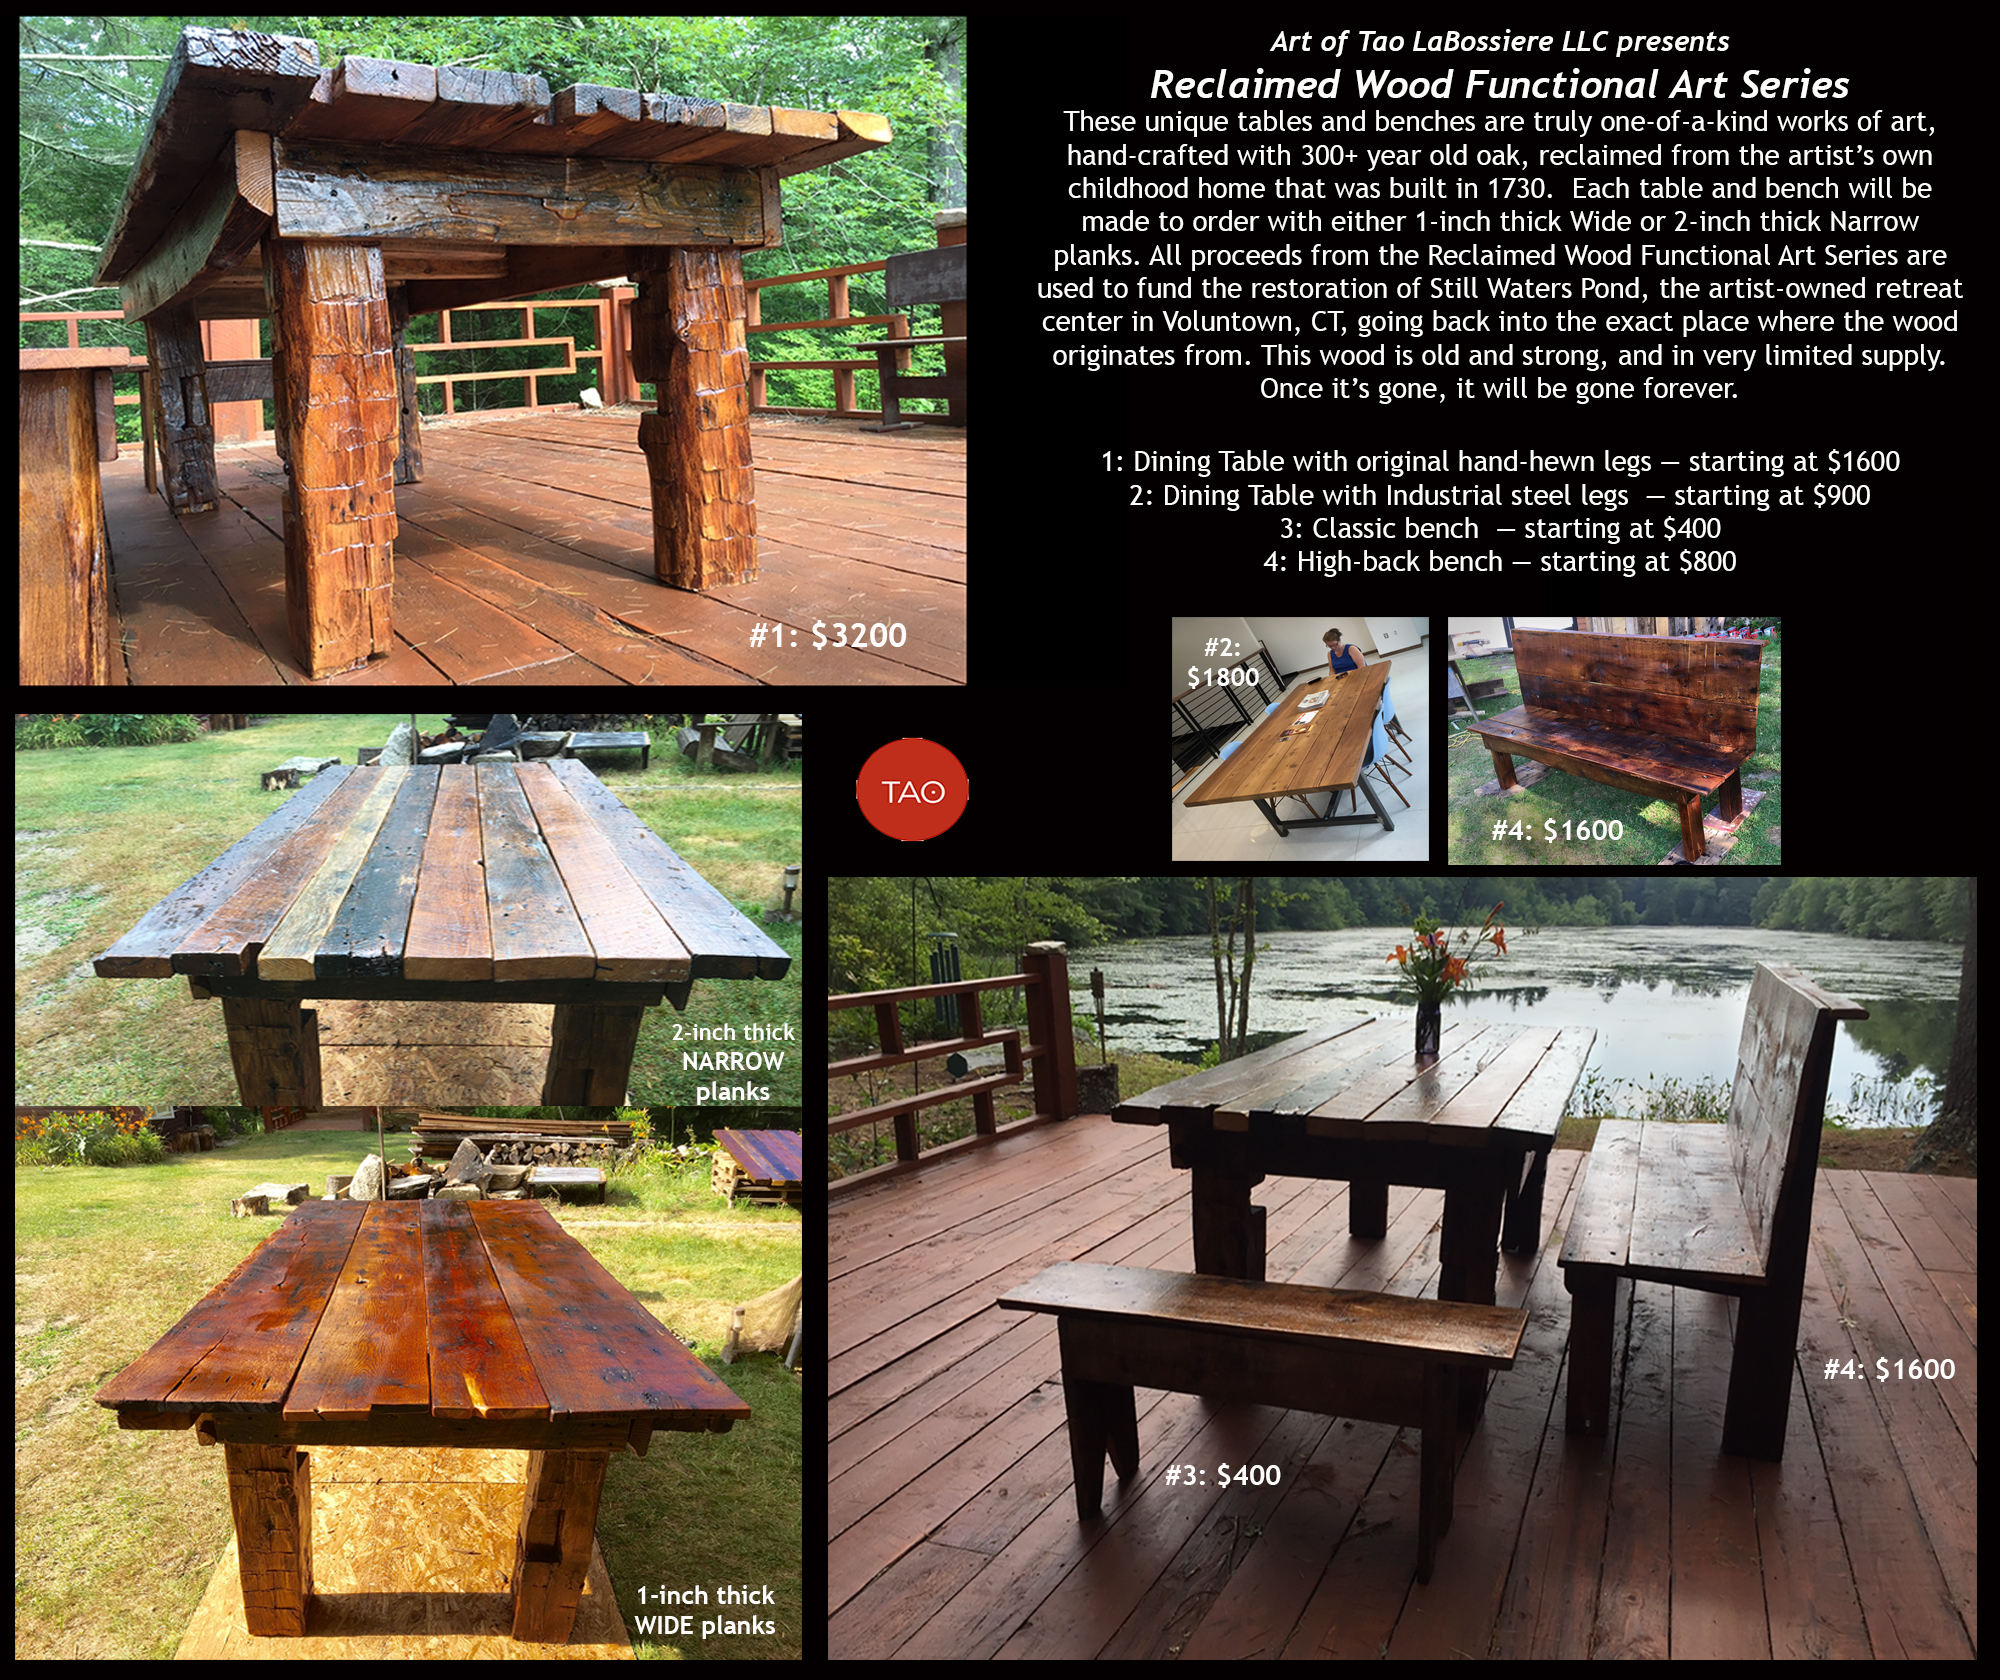 Contact us to claim one of these beautiful hand-made tables, or custom-order one to your exact size specifications.